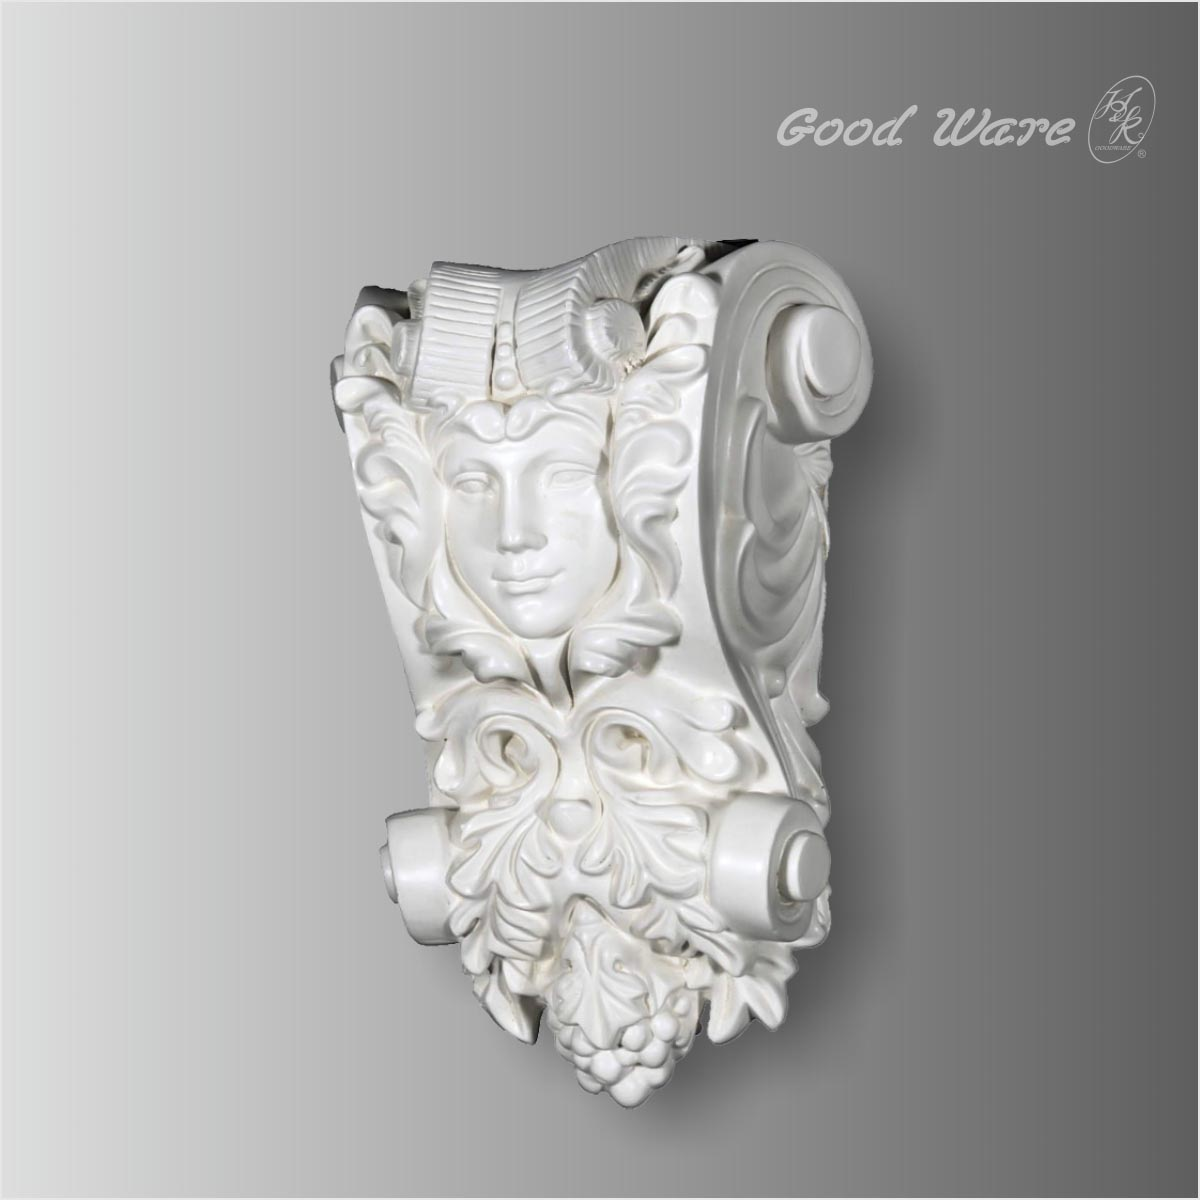 Polyurethane small decorative angel corbels